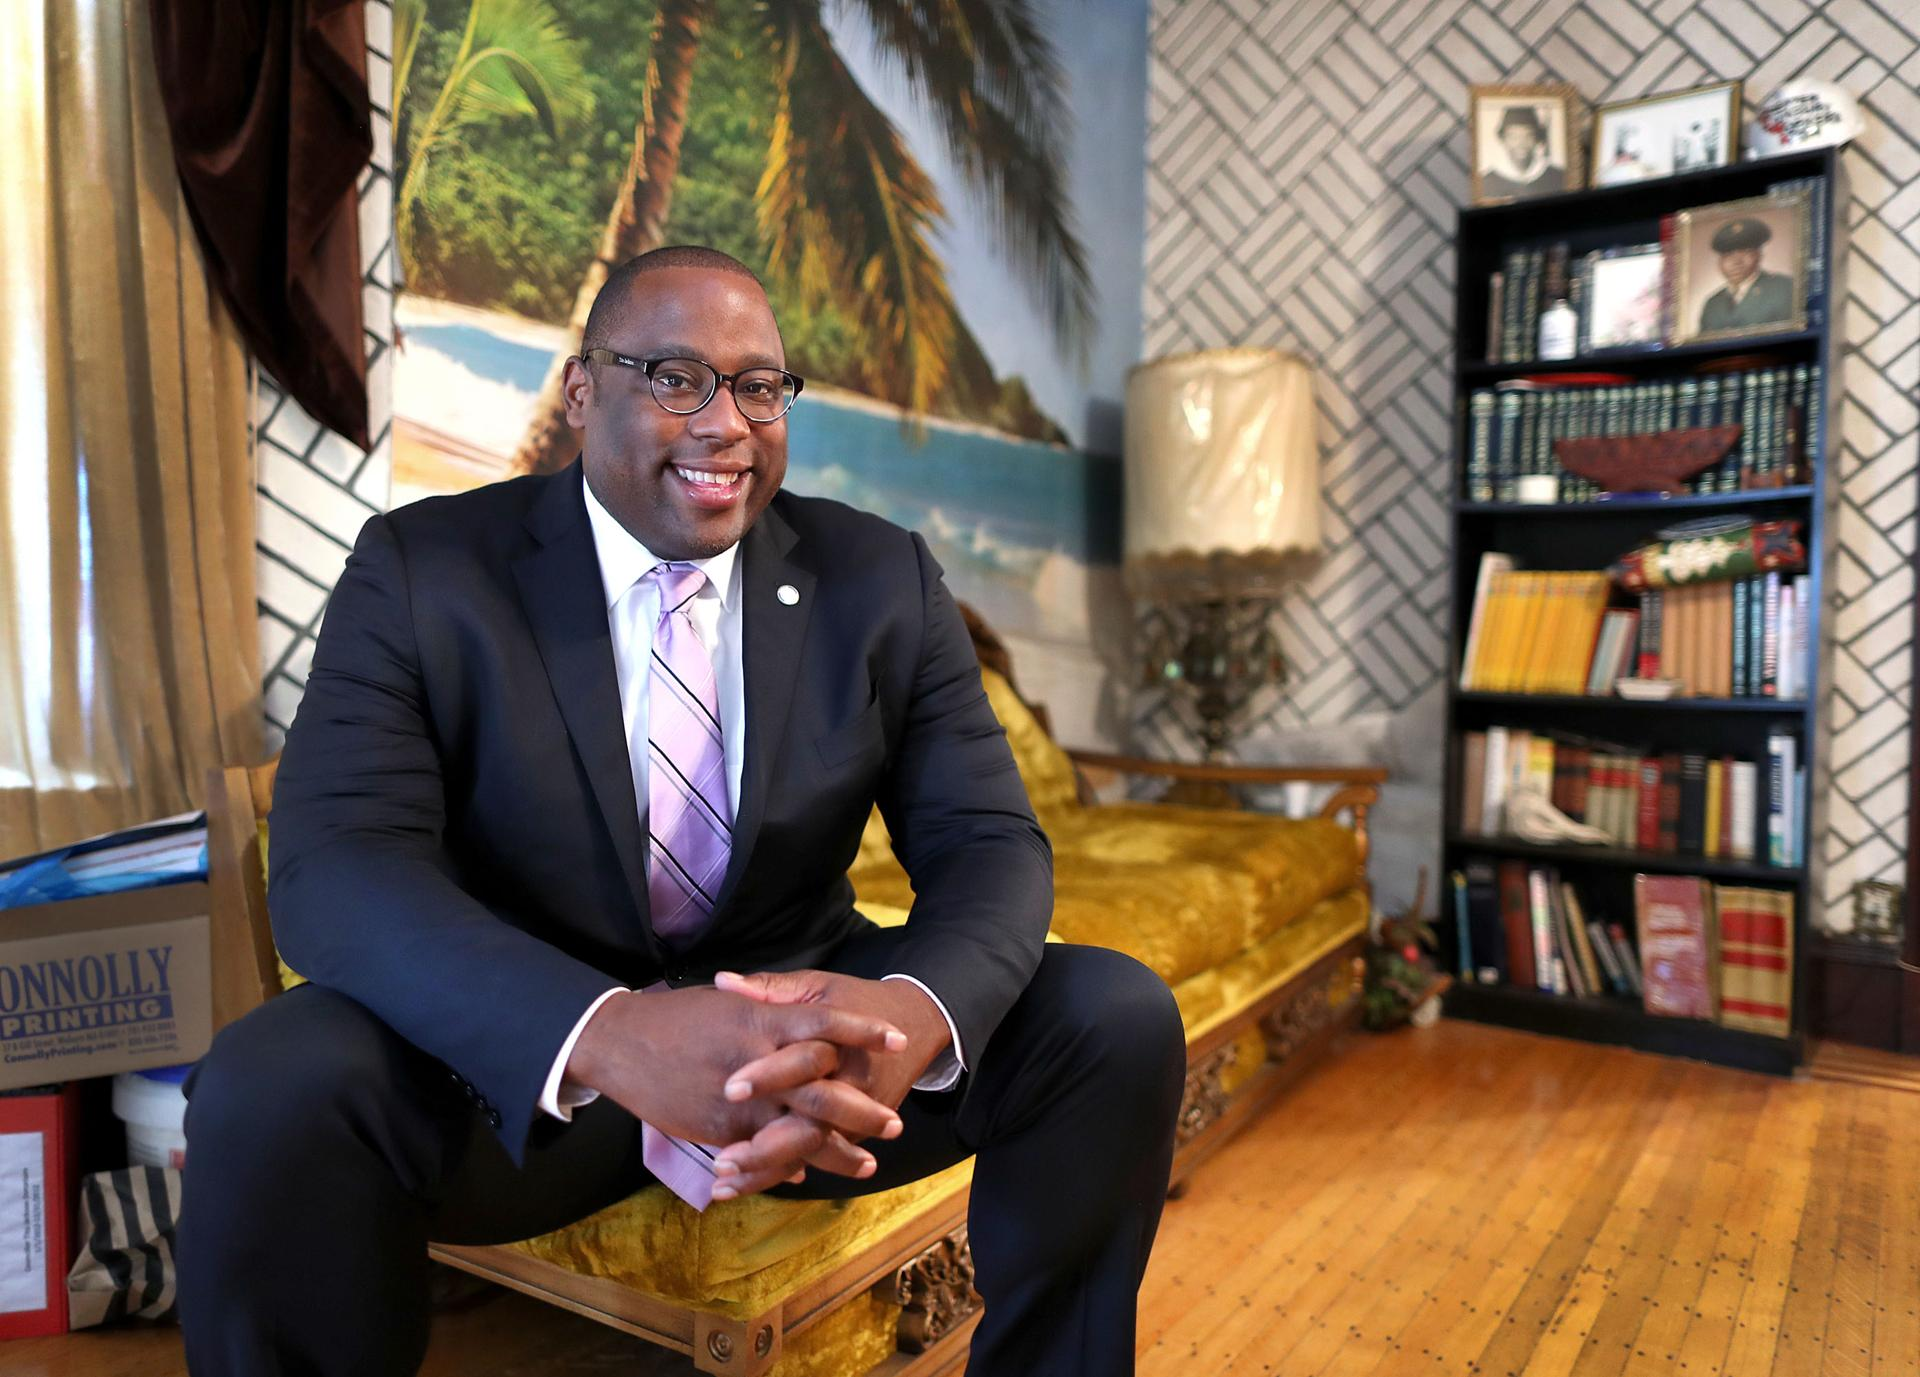 Boston mayoral candidate Tito Jackson in his living room.